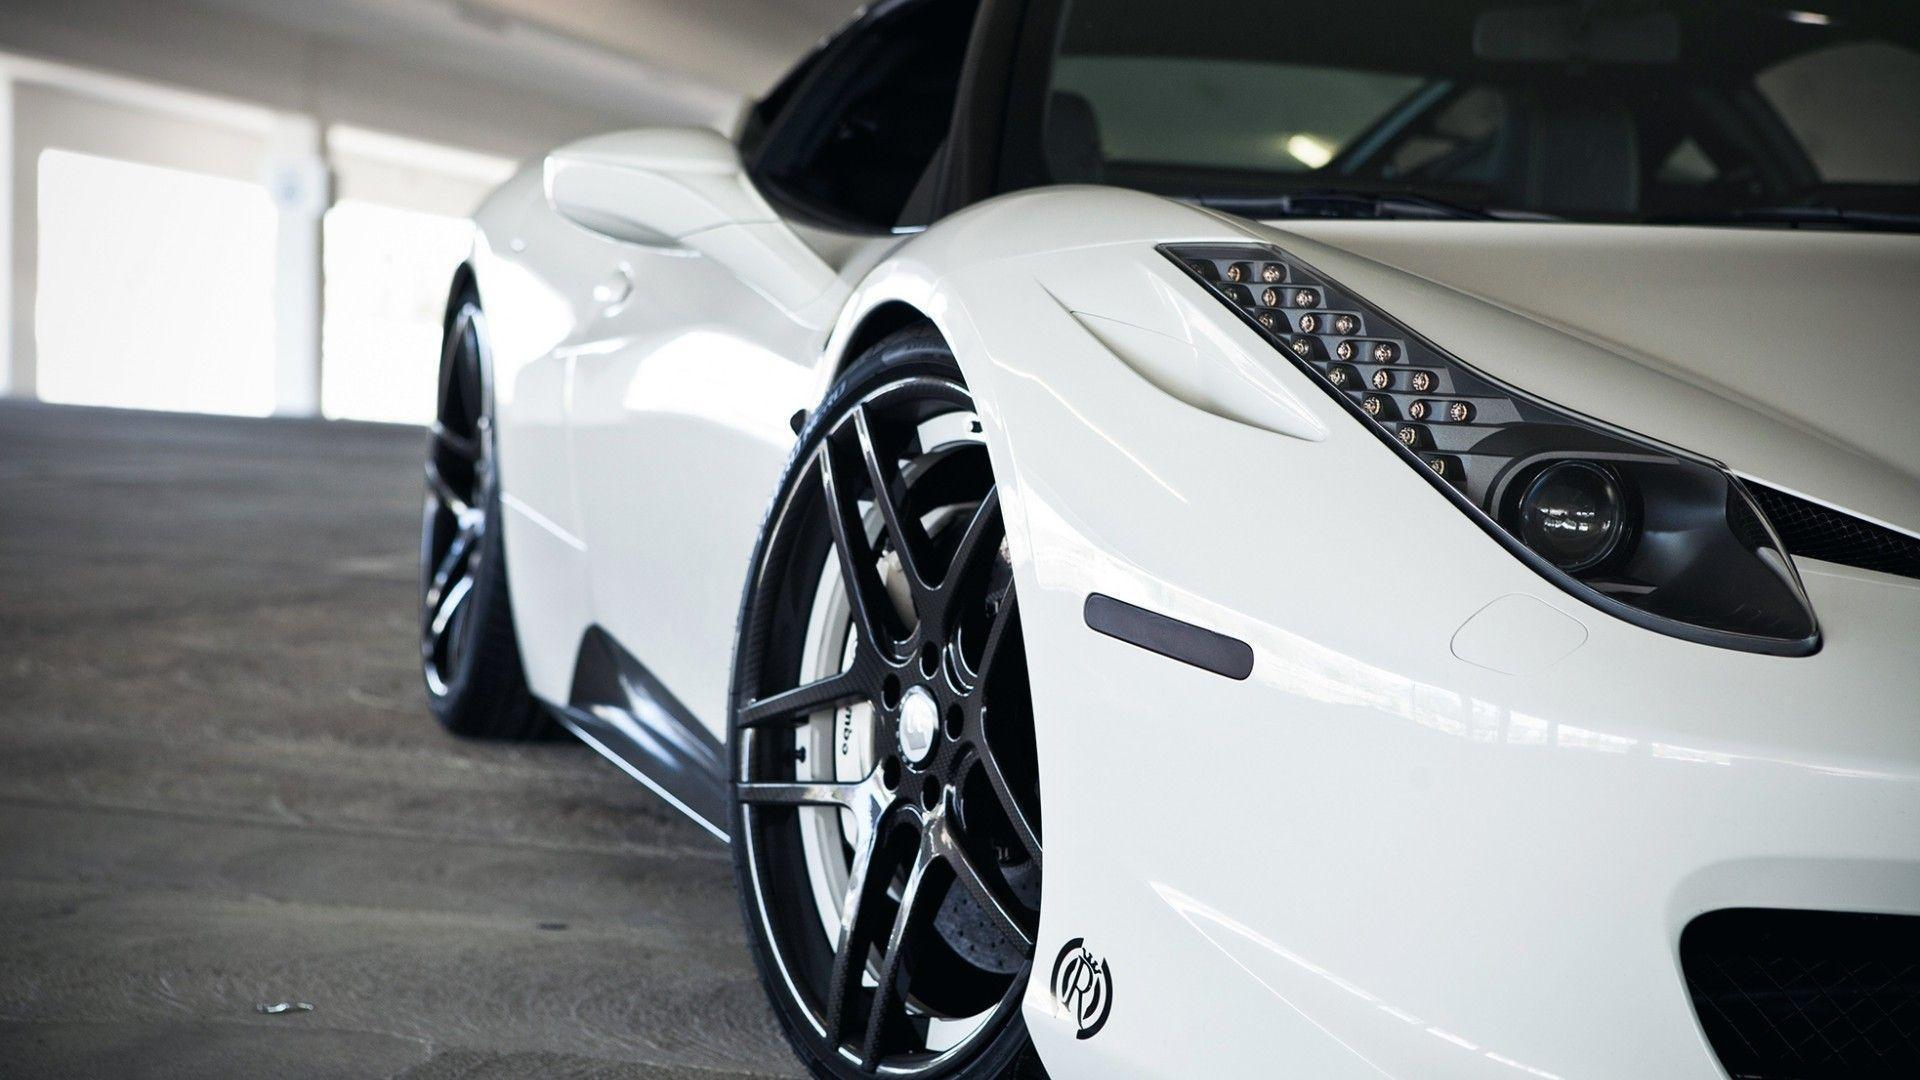 picture 2016 white ferrari 458 italia wallpaper cars images - Ferrari 458 Italia Wallpaper 19201080